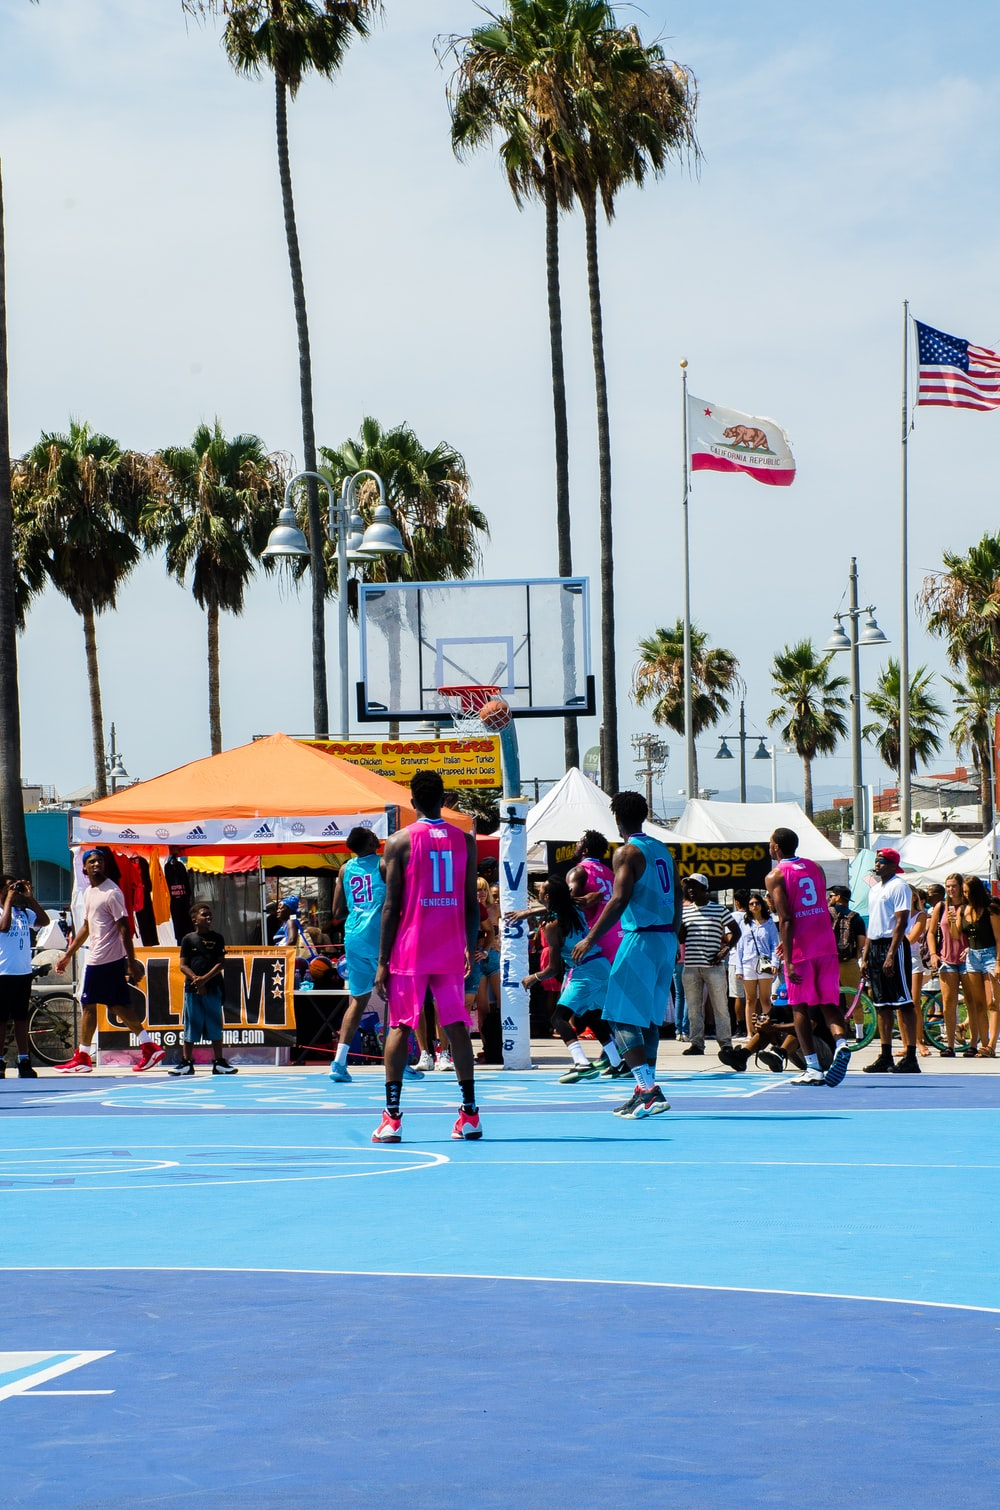 basketball players playing during daytime